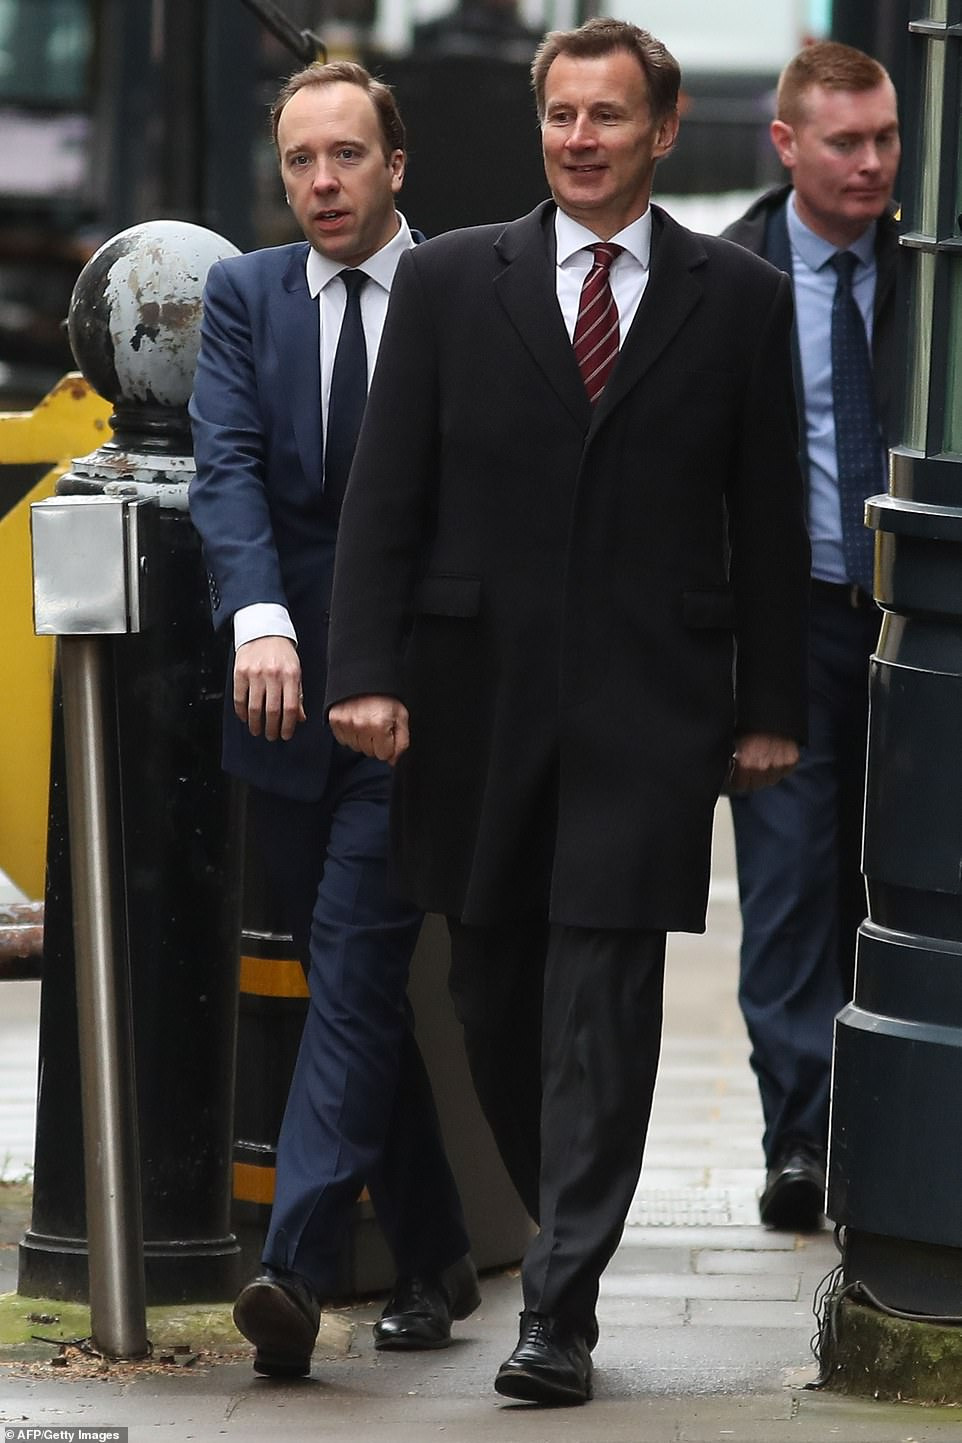 Health Secretary Matt Hancock and Jeremy Hunt arrive in Downing Street today ahead of the crucial vote tonight